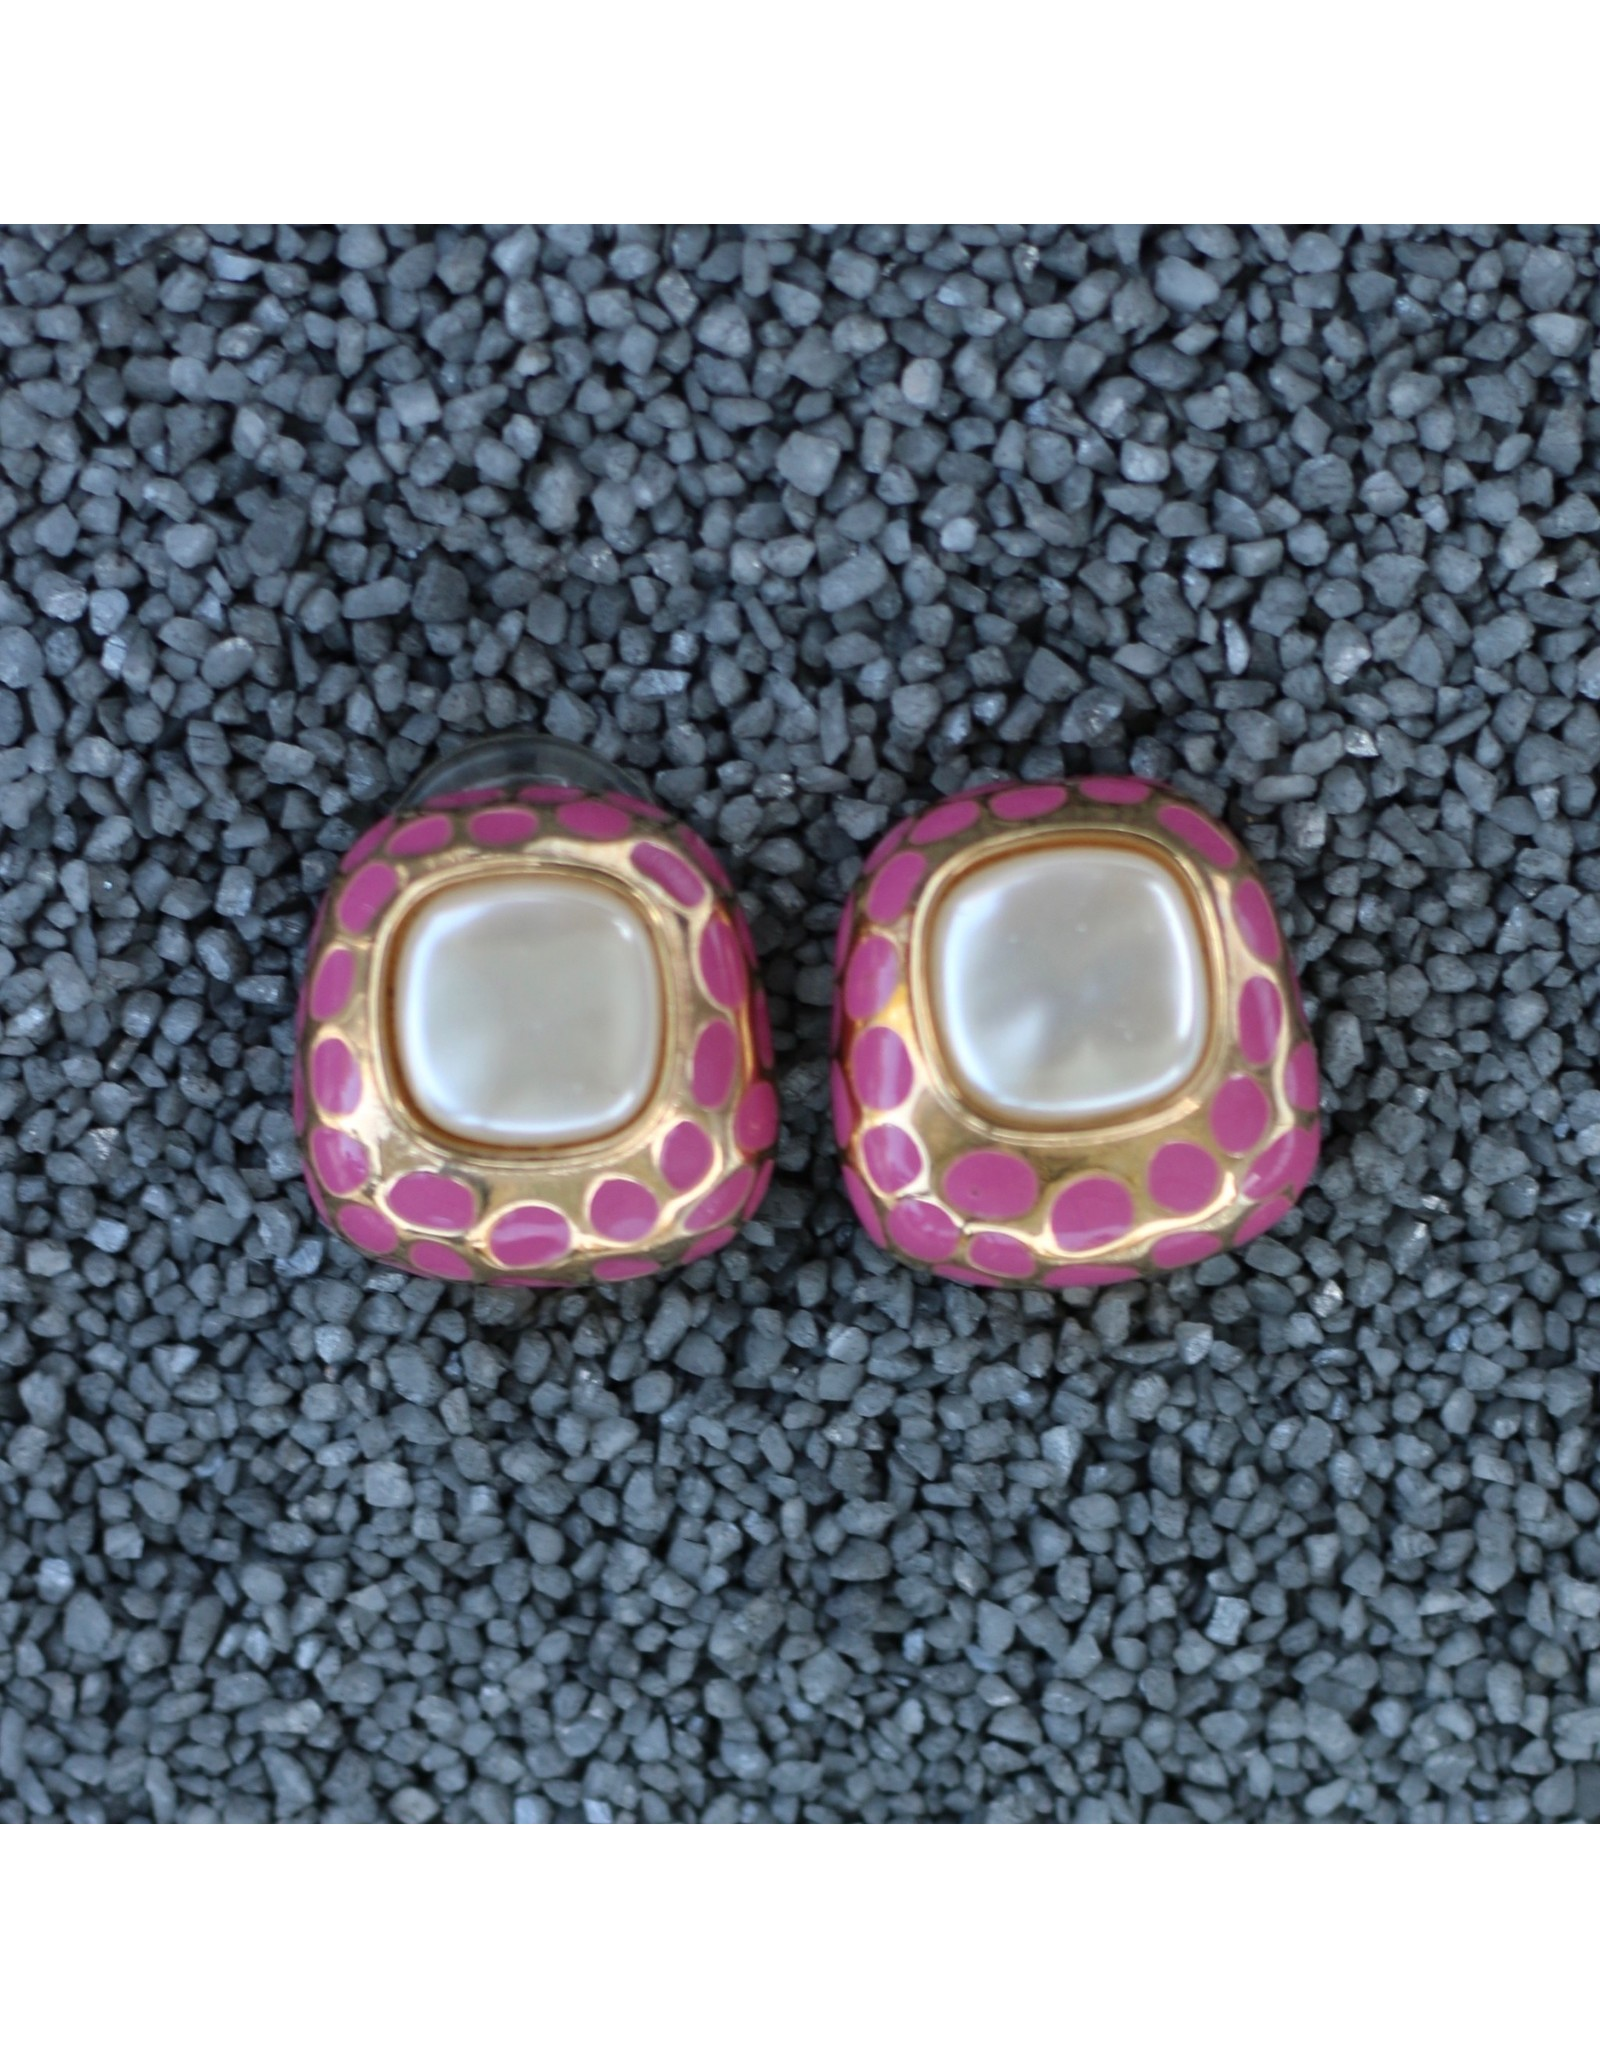 VC Italy rep/rje1876/pearl/goldandpink/dots